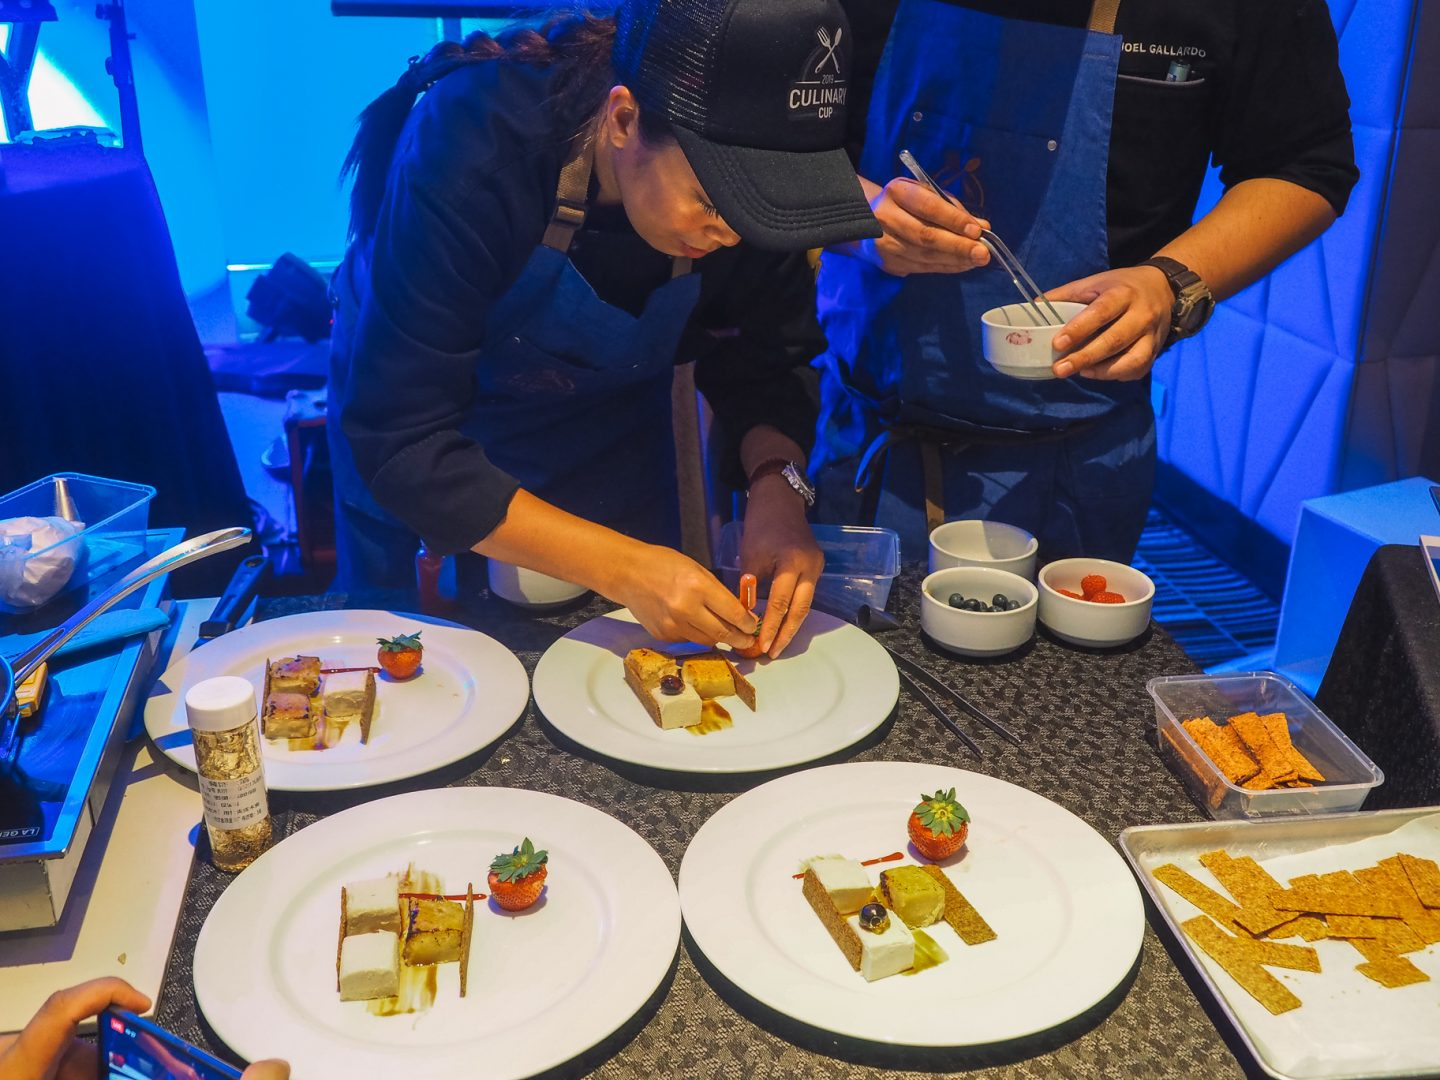 discovery-hotels-and-resorts-inter-hotel-culinary-cup-2019